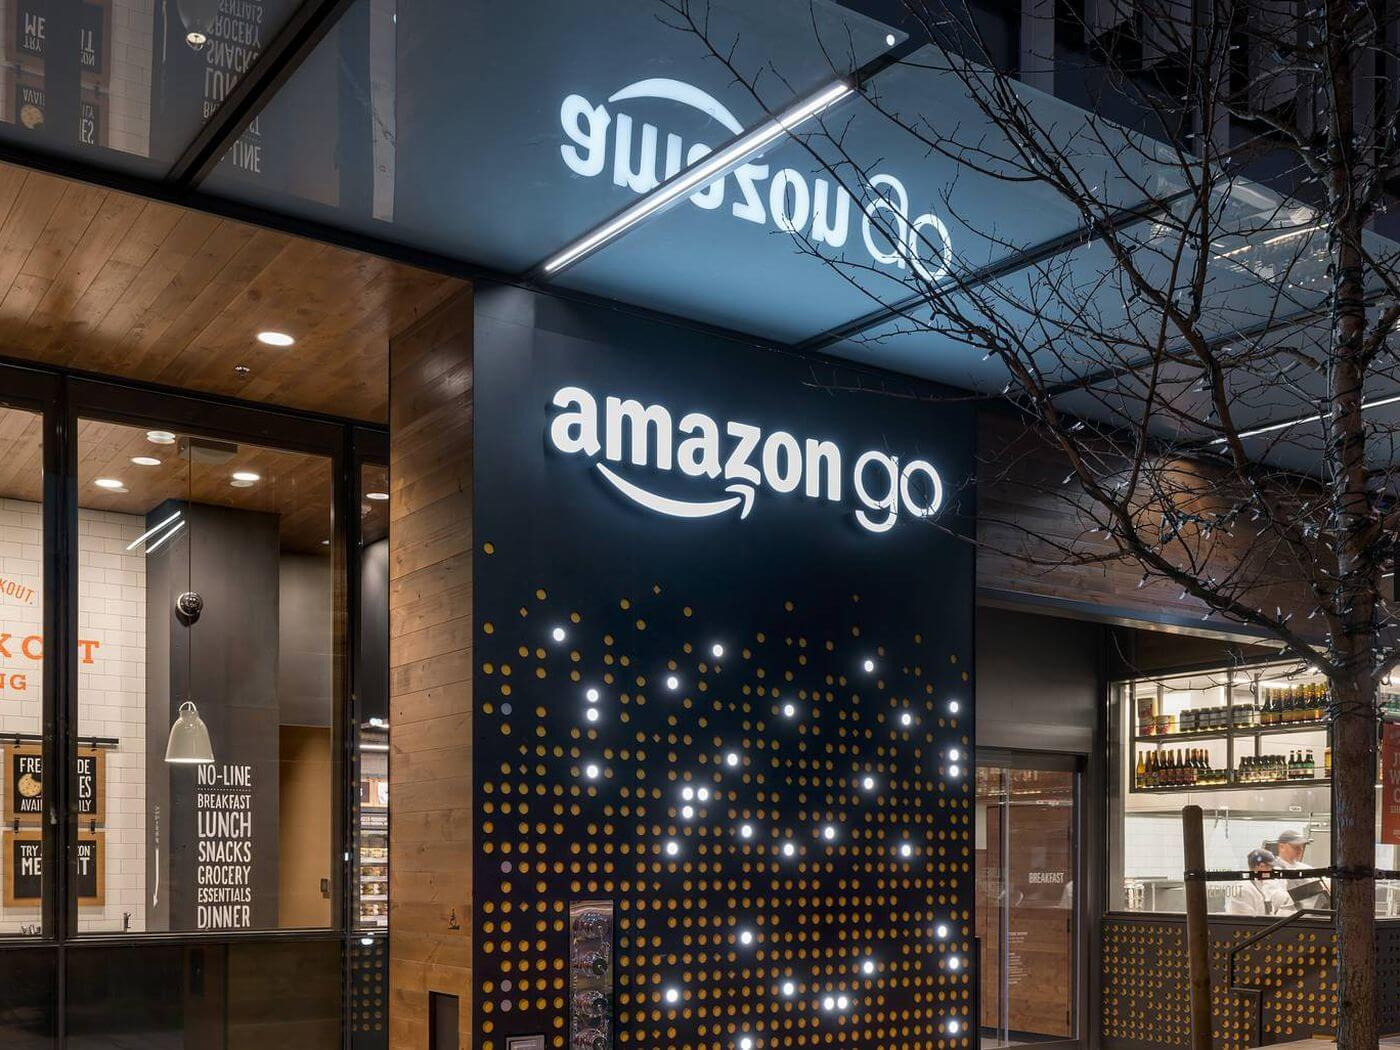 Amazon Said to Consider Opening Up to 3,000 Cashierless Stores by 2021